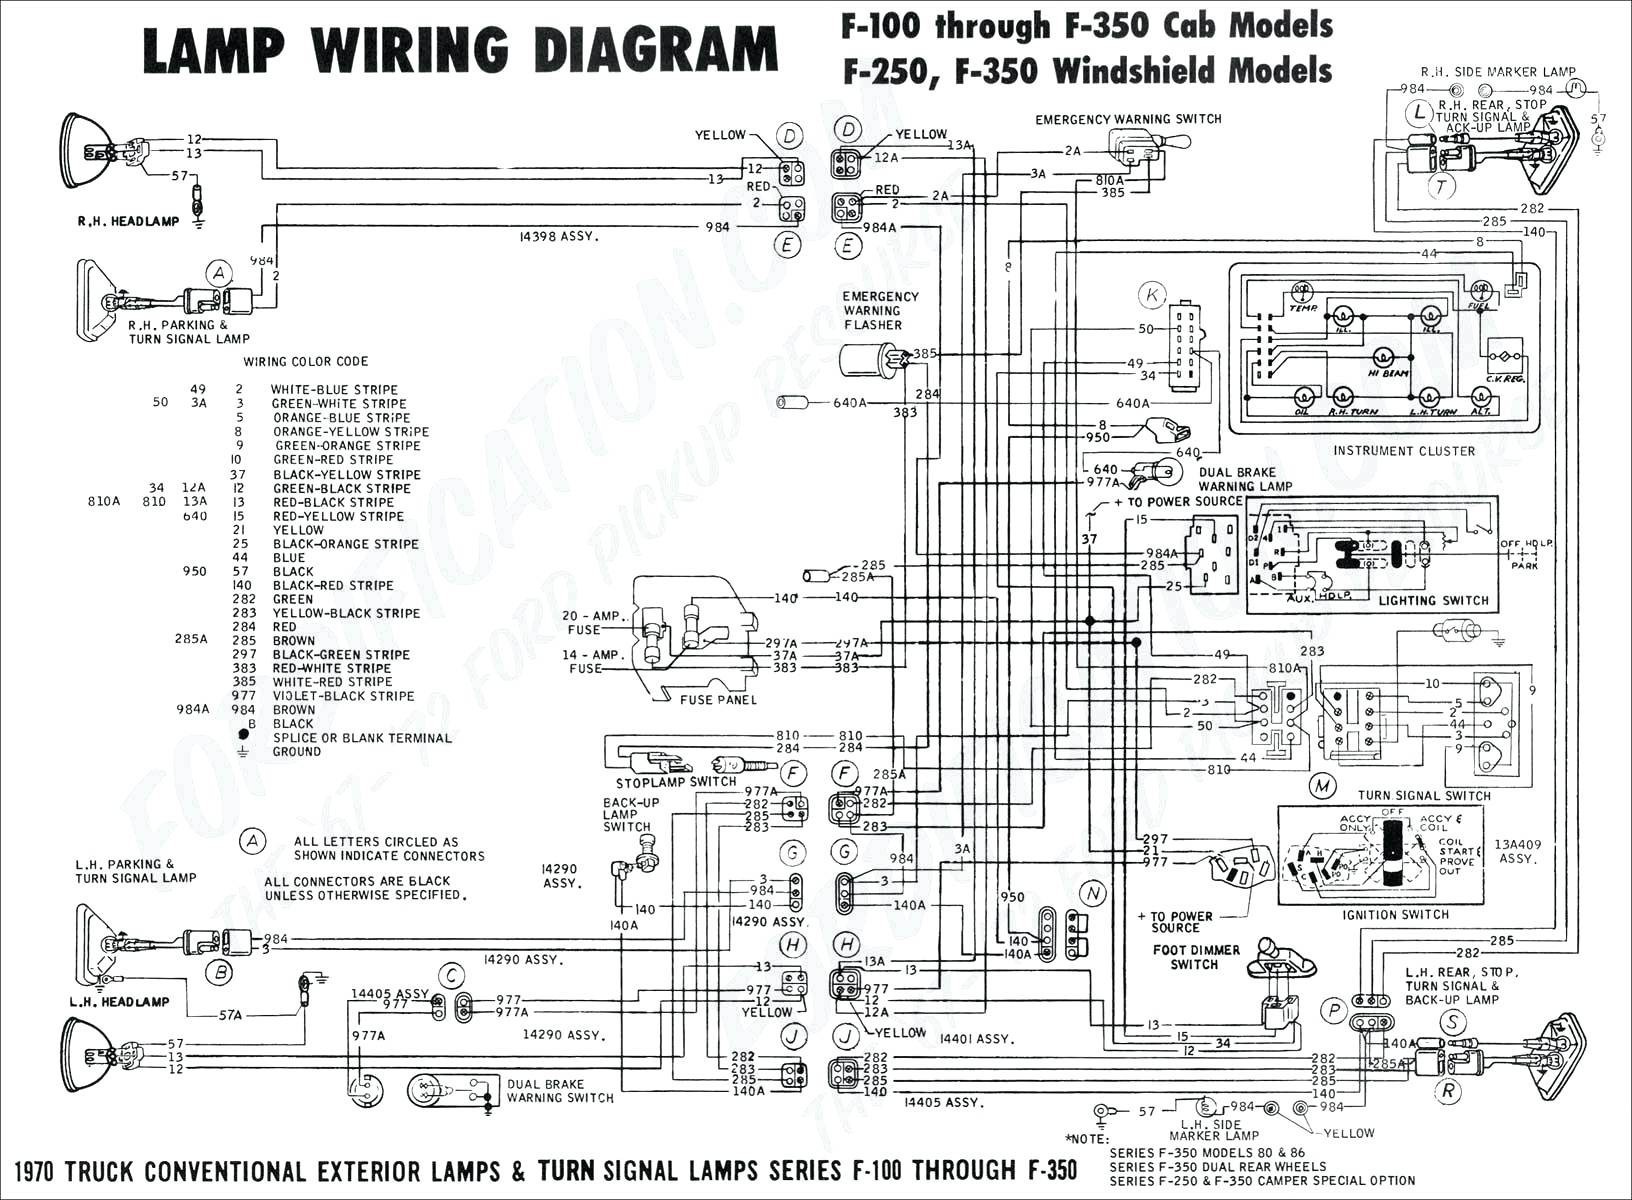 1986 Chevy Truck Radio Wiring Diagram Chevy Silverado Wiring Diagram for 1997 Best Truck Radio Suburban Of 1986 Chevy Truck Radio Wiring Diagram